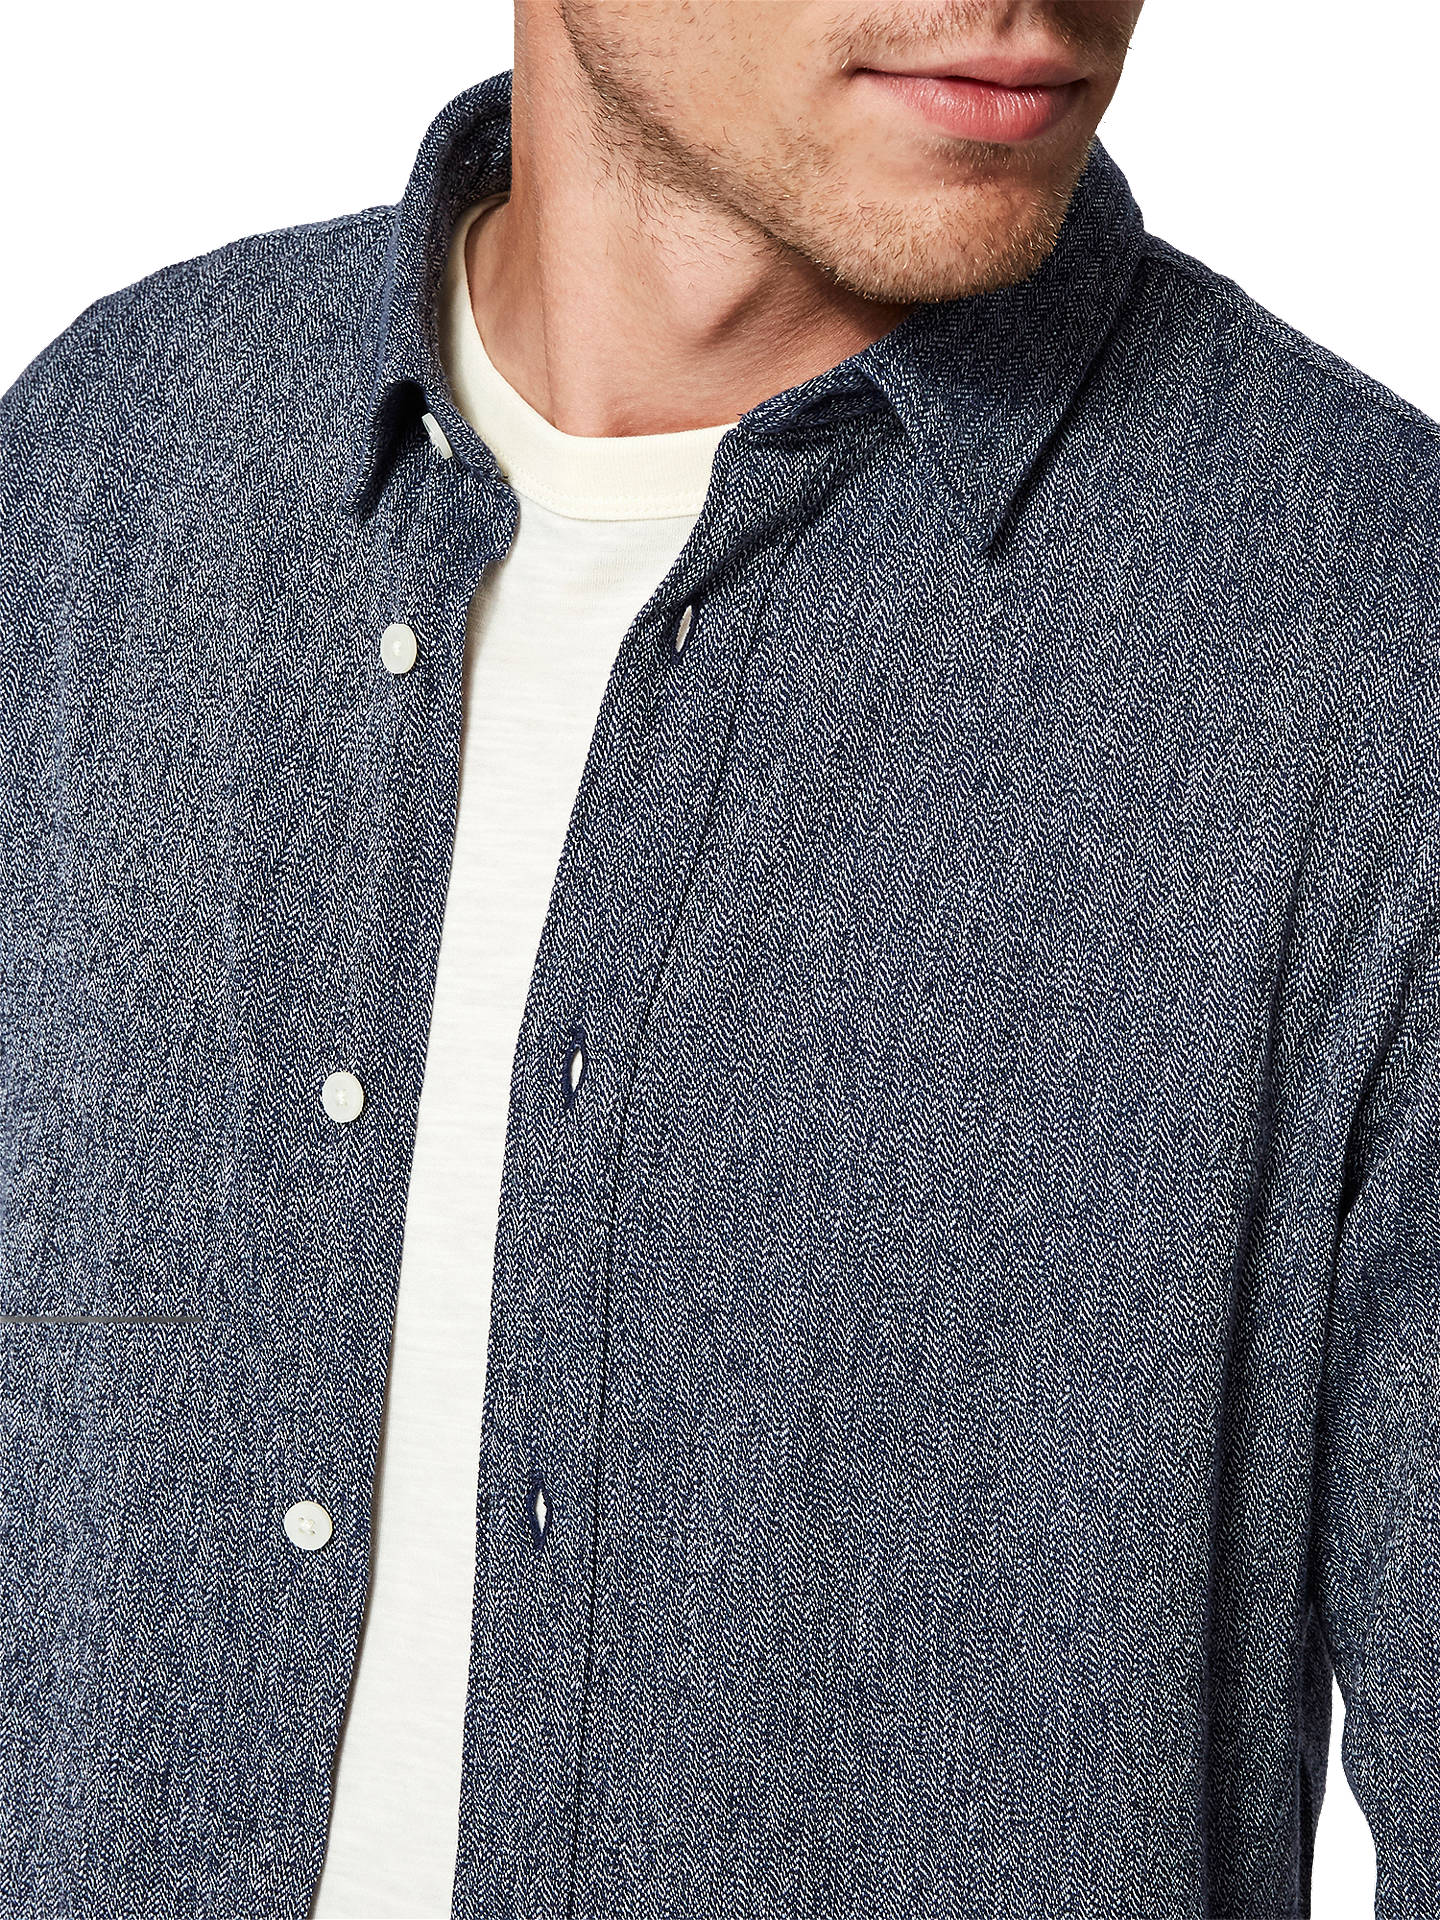 BuySelected Homme Gunnar Shirt, Dark Blue Structure, M Online at johnlewis.com